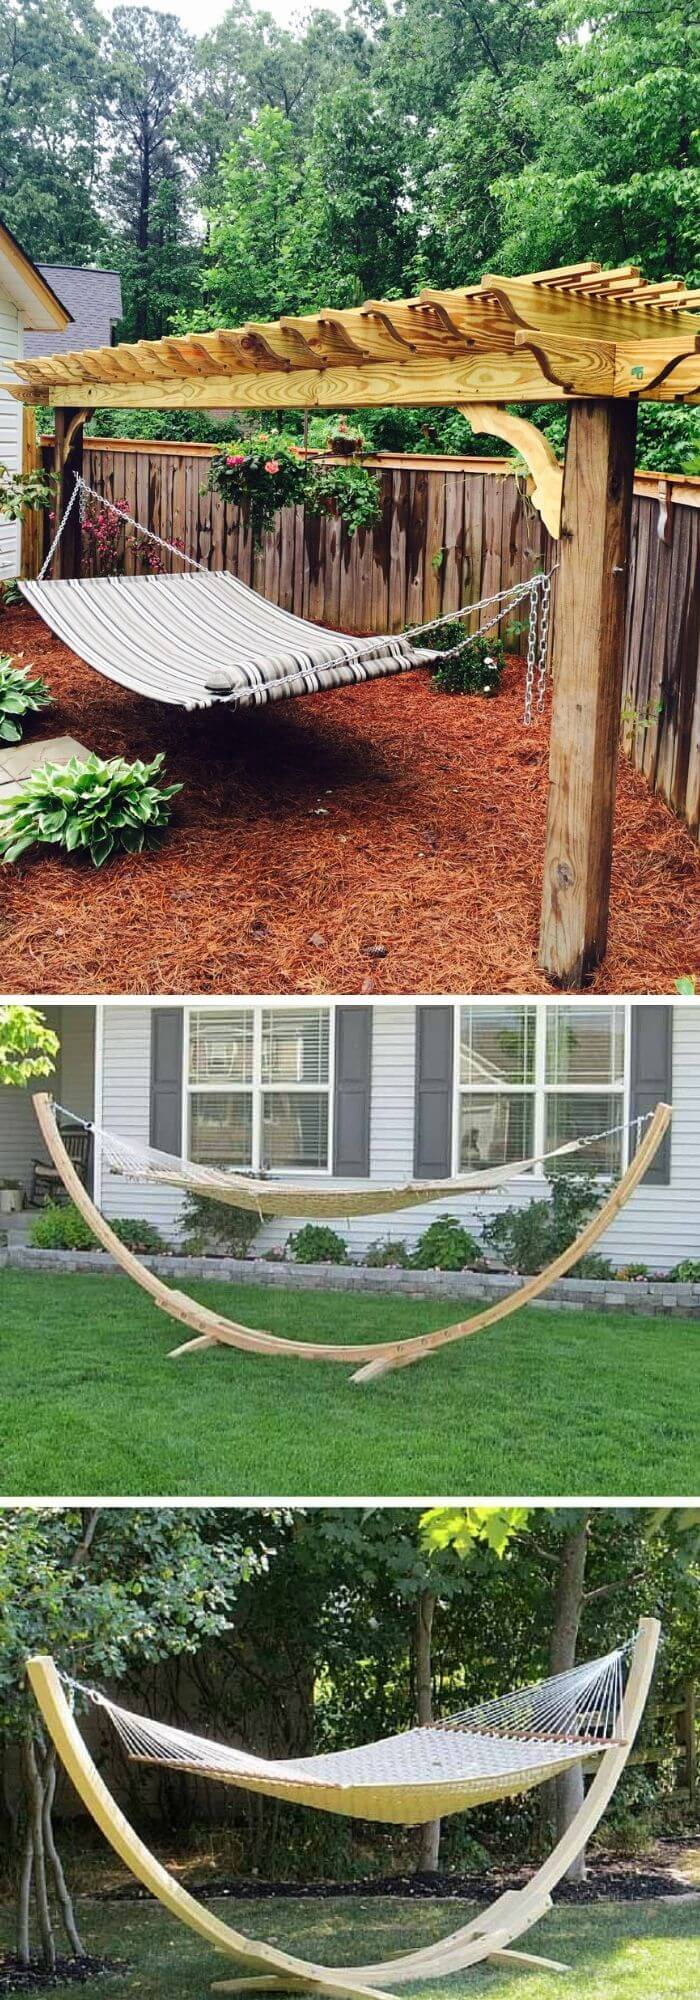 Backyard DIY Hammock Swing/ Chair